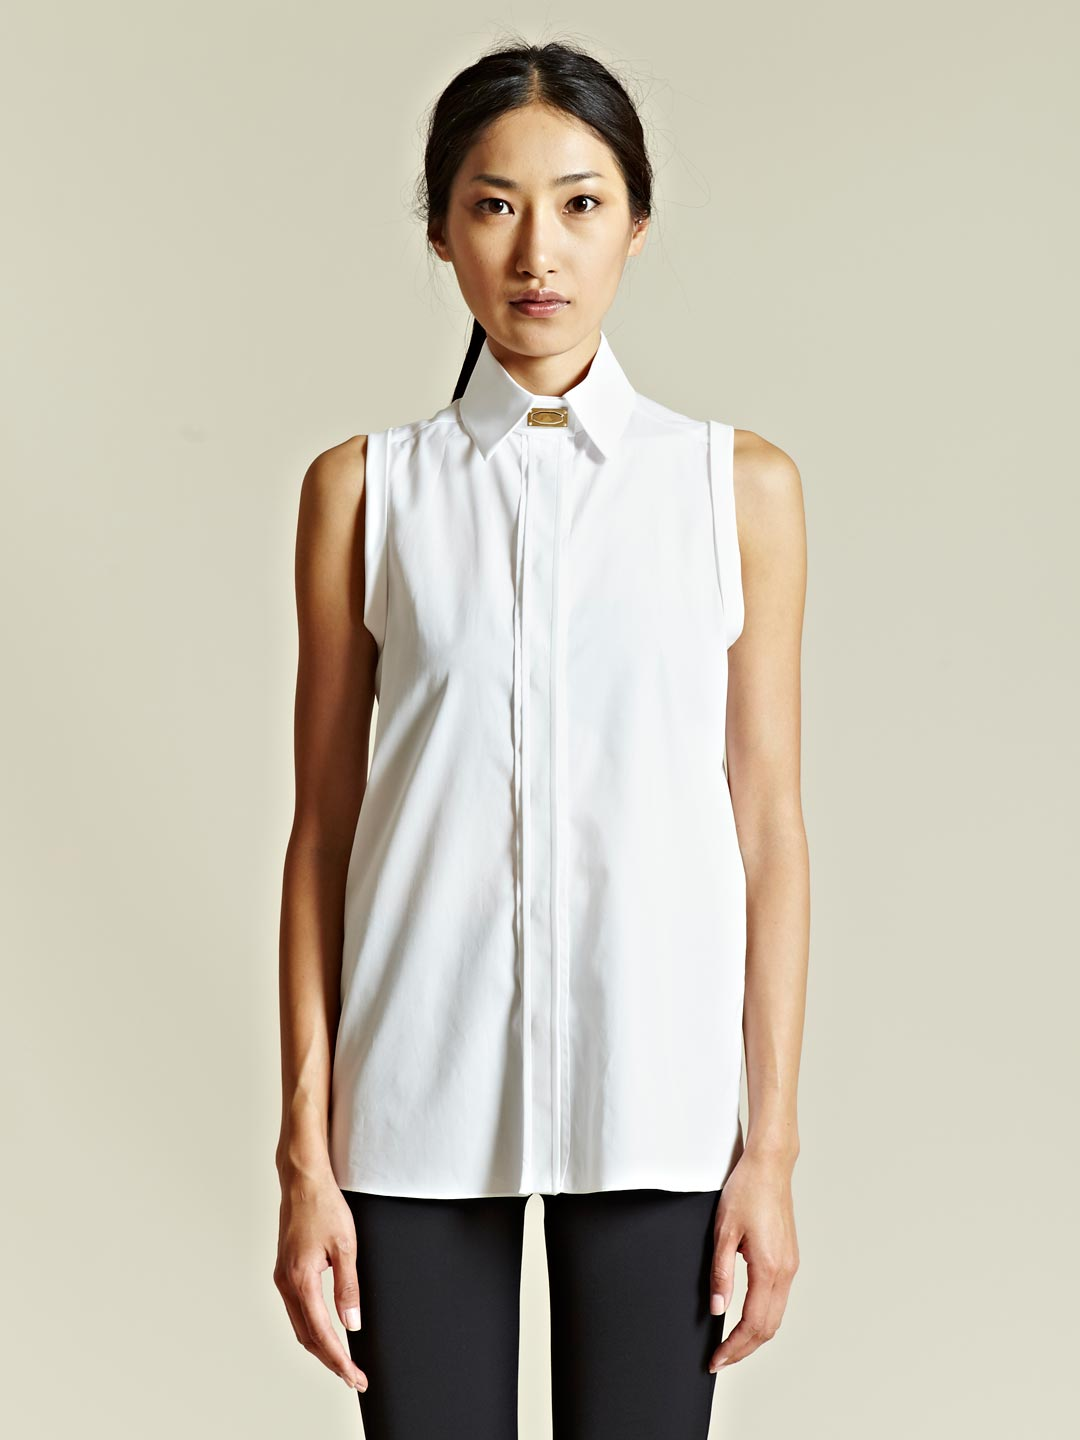 Givenchy Givenchy Womens Sleeveless Shirt In White Lyst